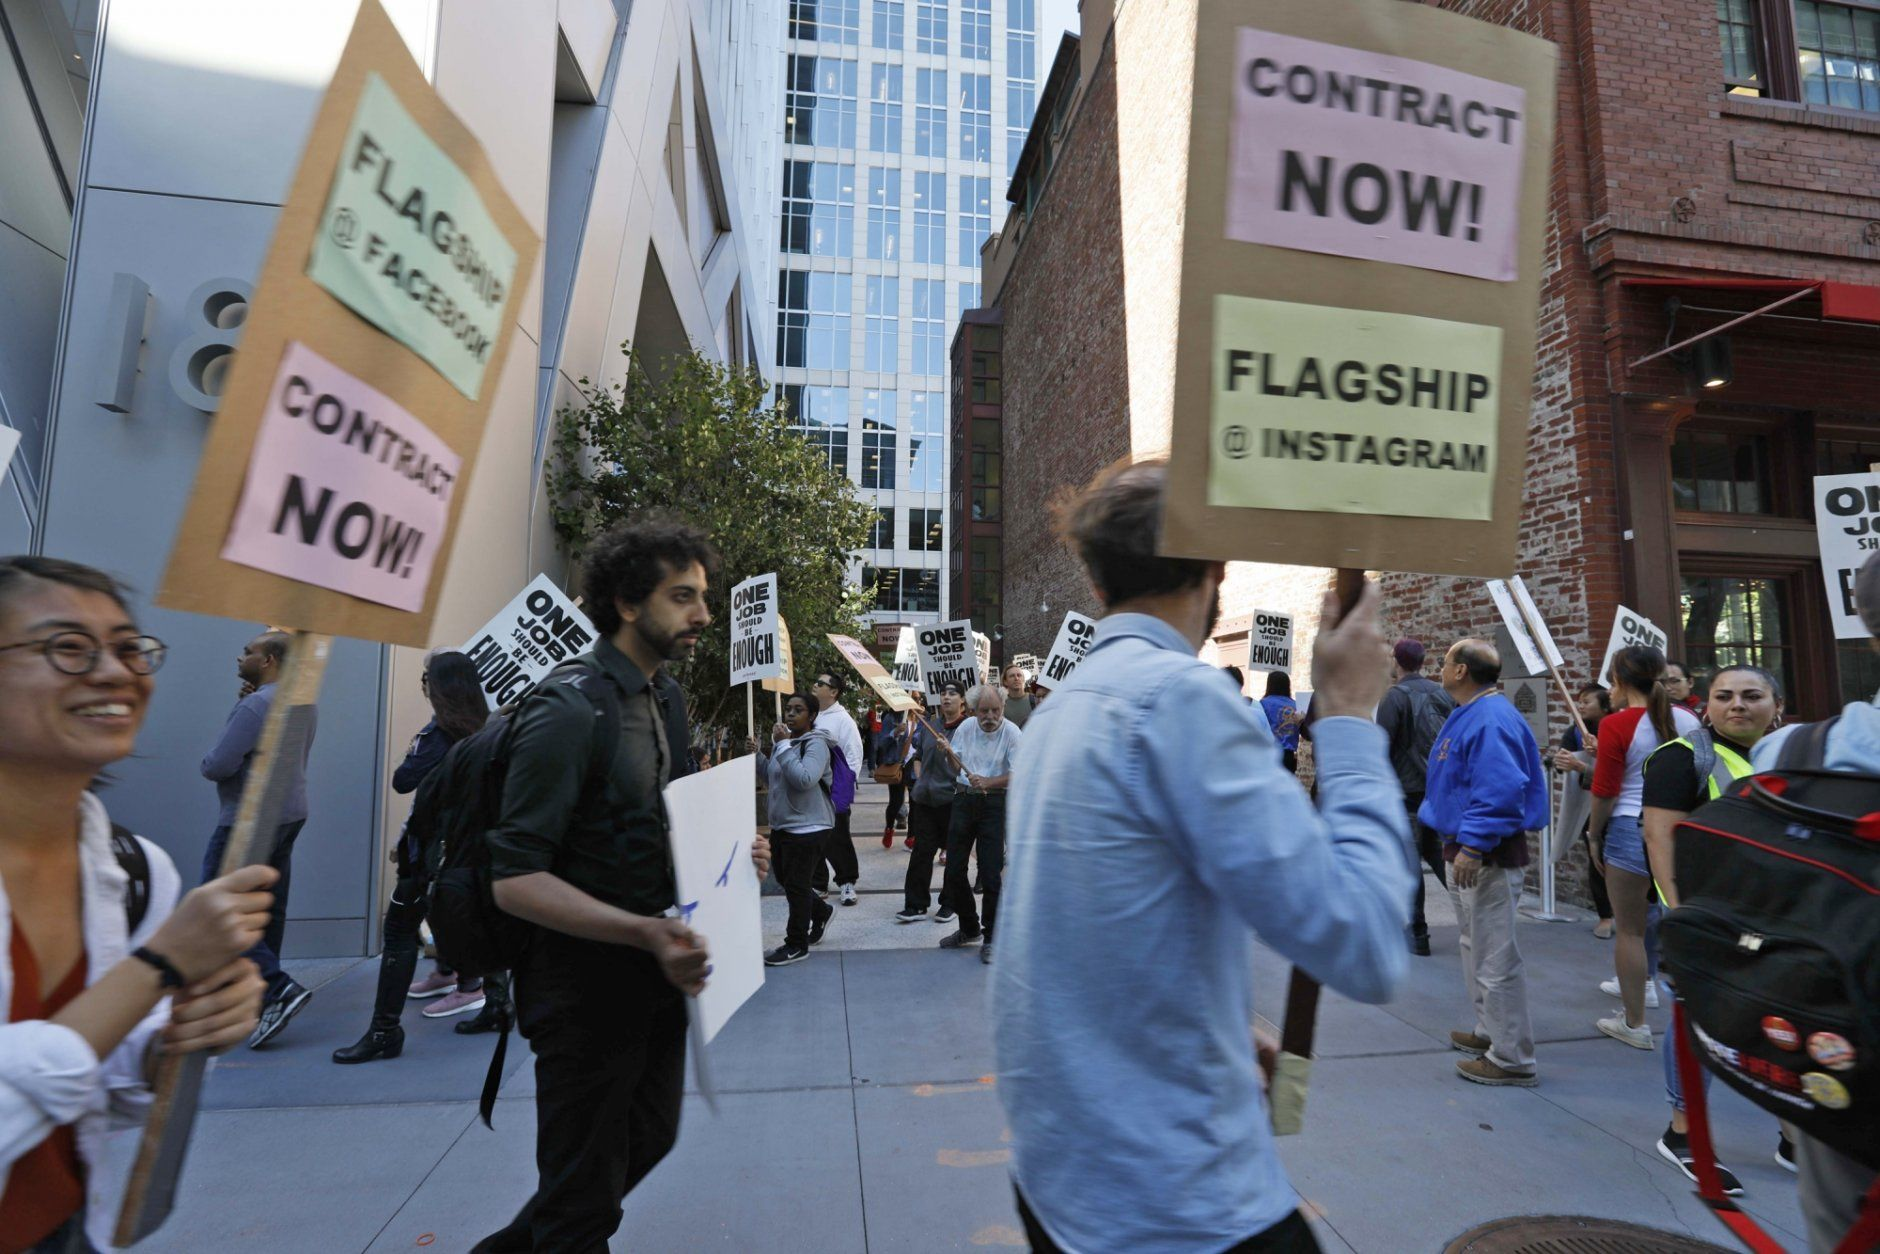 In this photo taken July 16, 2019, tech workers march to support Facebook's cafeteria workers, who were rallying for a new contract with their company Flagship in San Francisco. Tech workers are speaking out on issues of immigration, the environment, sexual misconduct and military warfare like never before. Google, Amazon and Microsoft employees protest against how their work is used by the government. Through petitions and collective actions, others push for better internal policies, greener practices and better work conditions for contractors. (AP Photo/Samantha Maldonado)